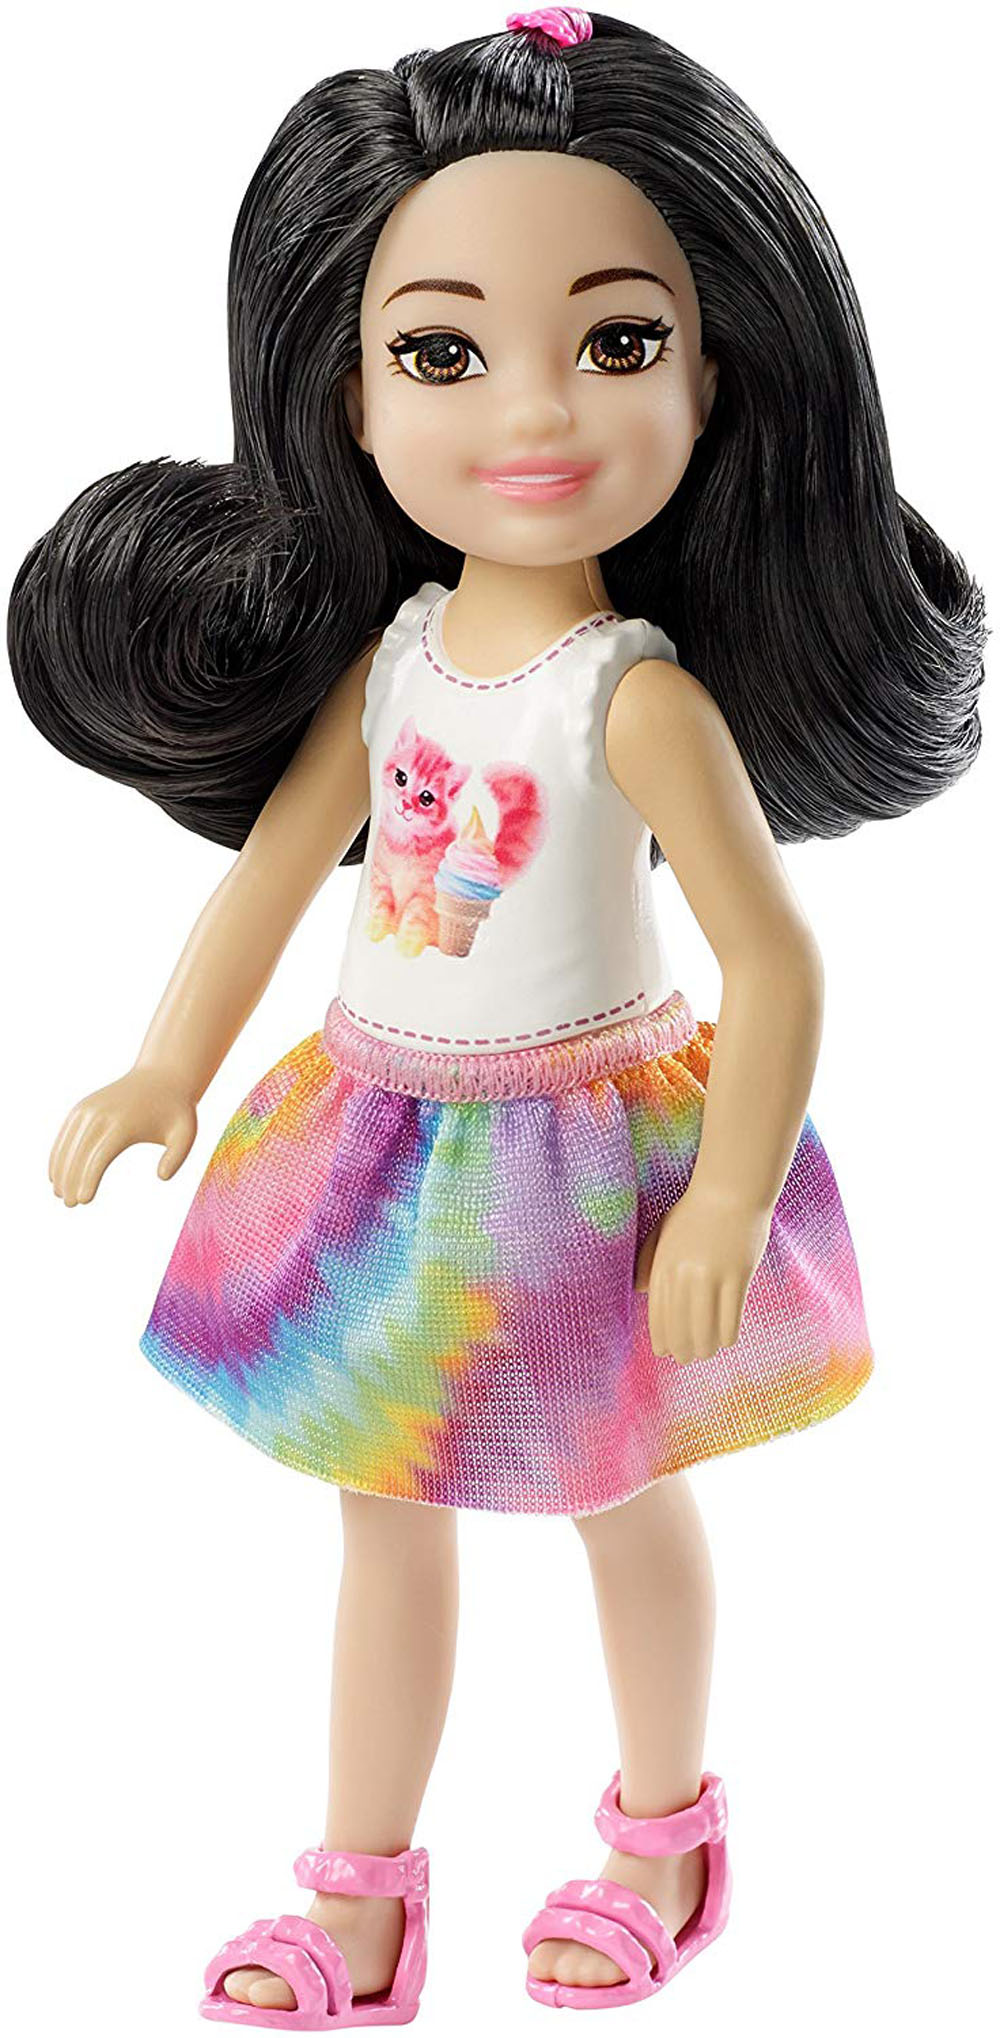 Barbie Club Chelsea Doll Black Hair Ele Toys Llc